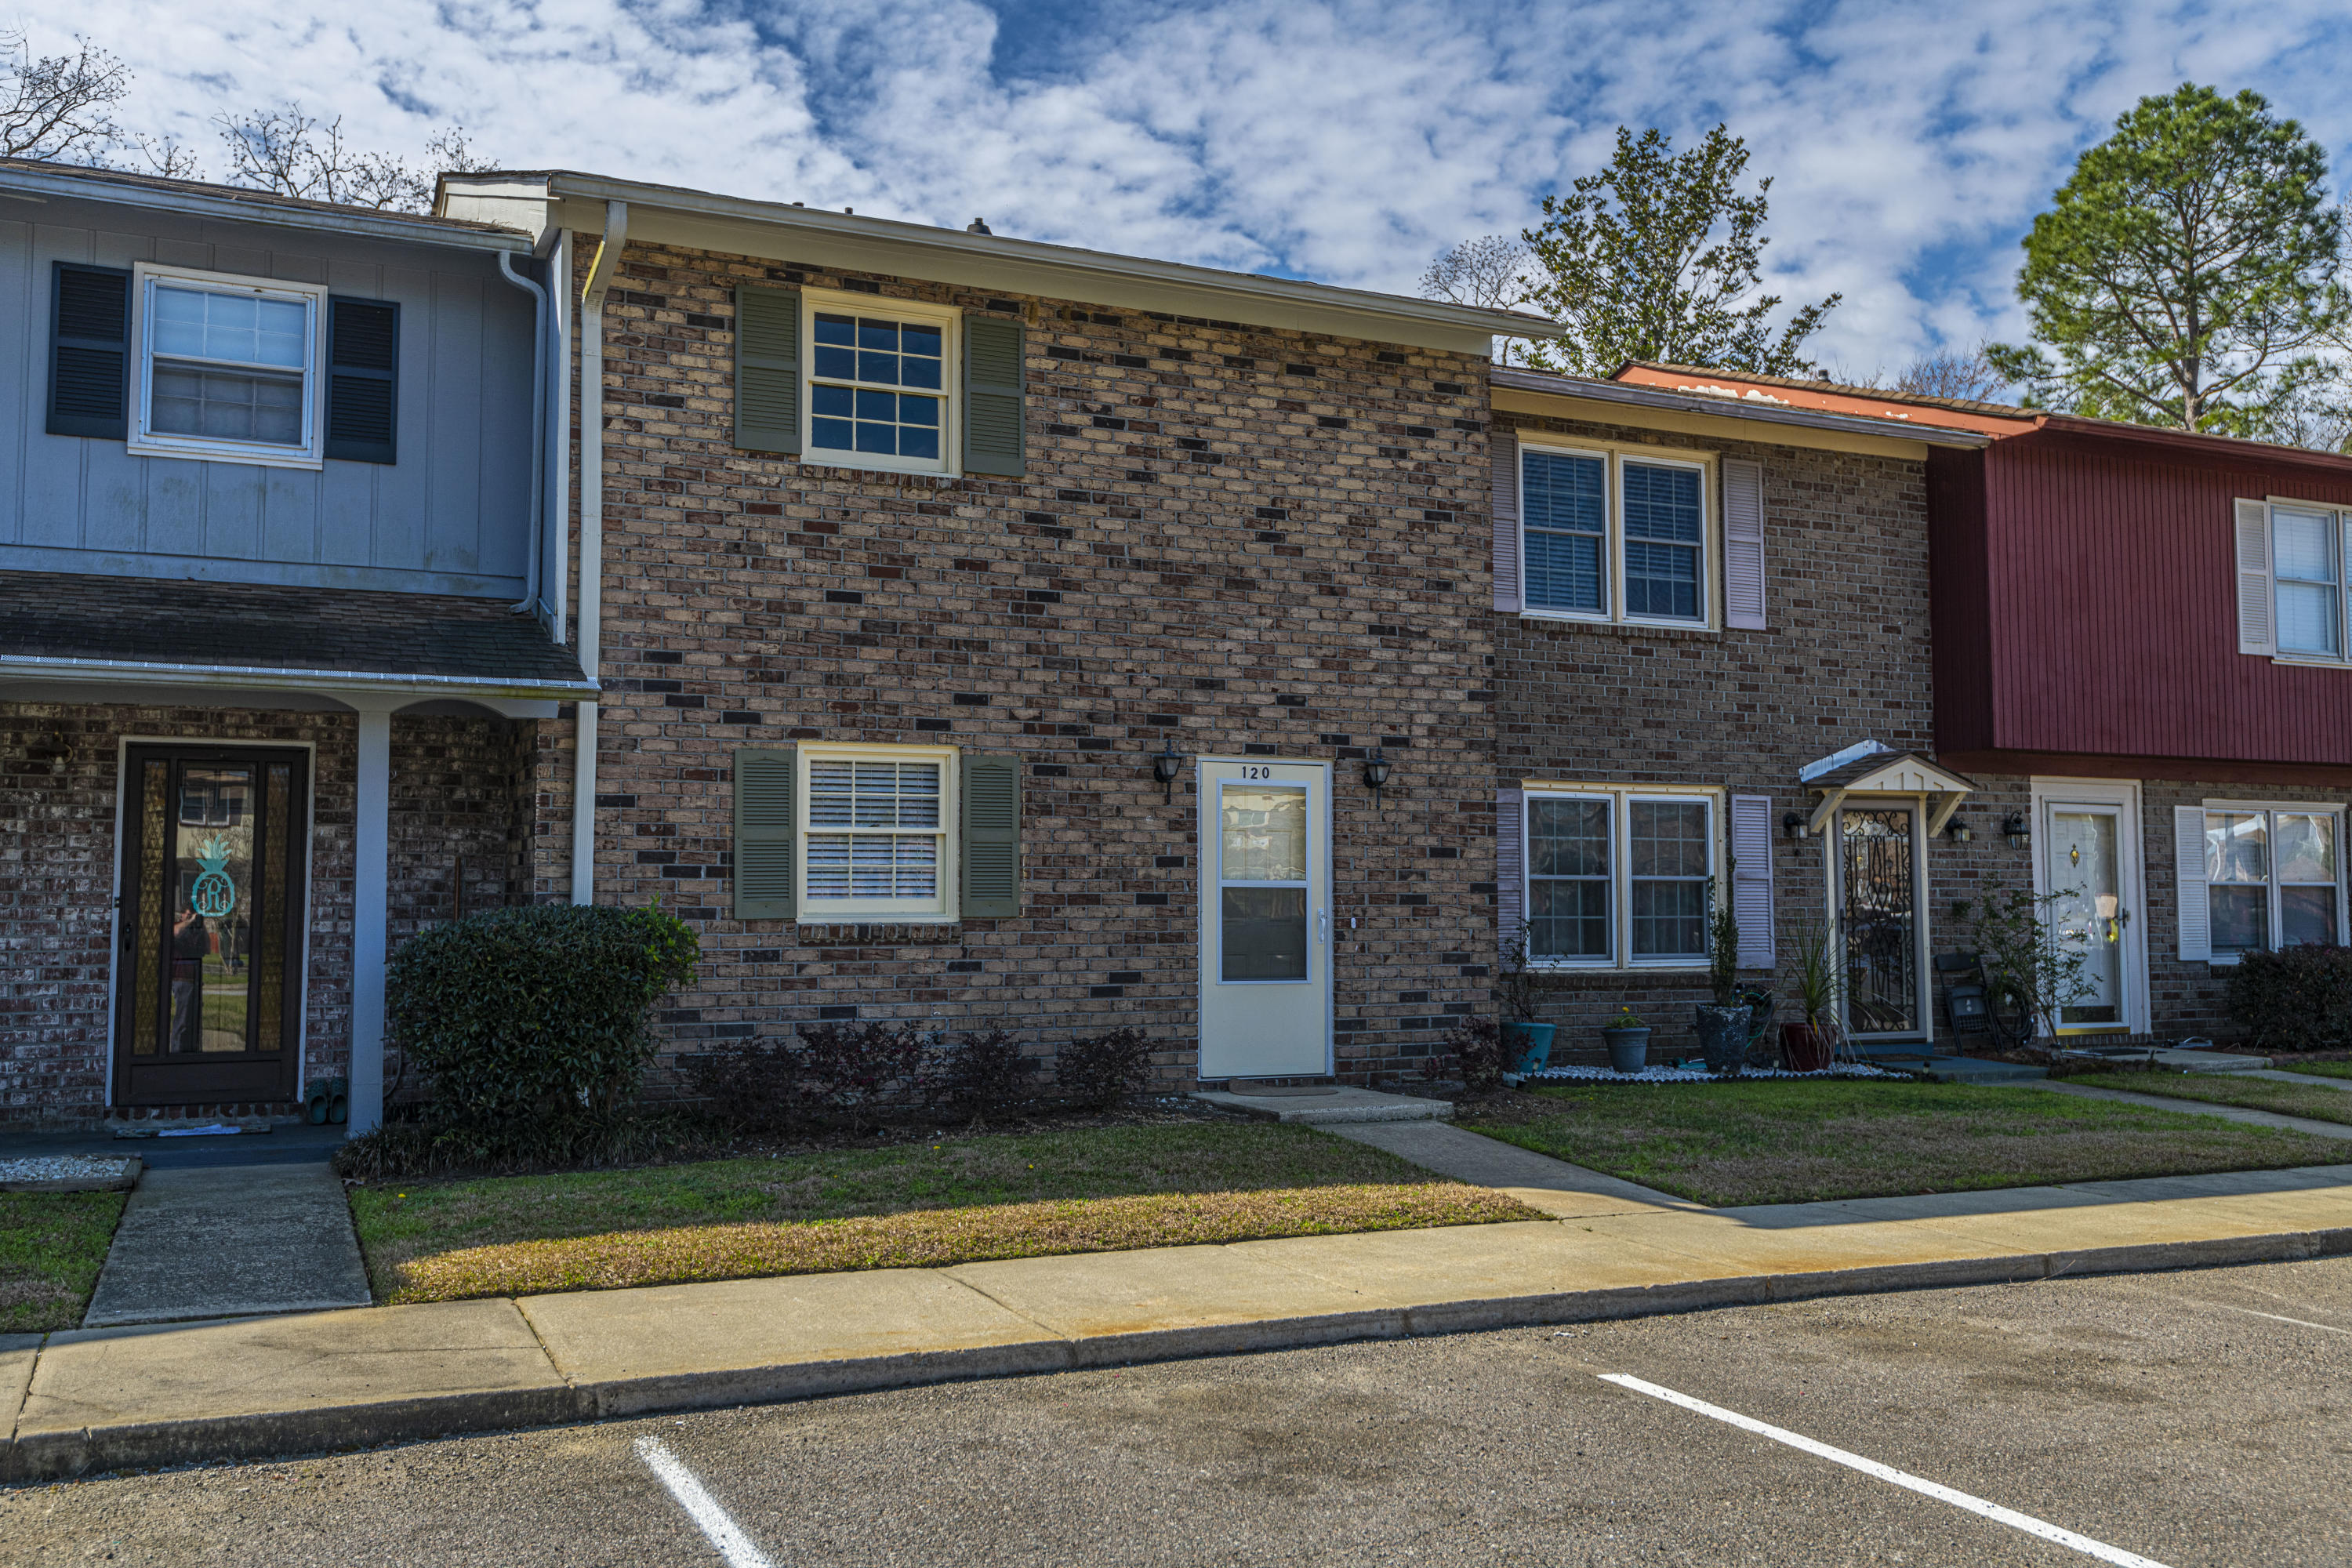 Foxborough Town Houses Homes For Sale - 120 Brush, Goose Creek, SC - 31